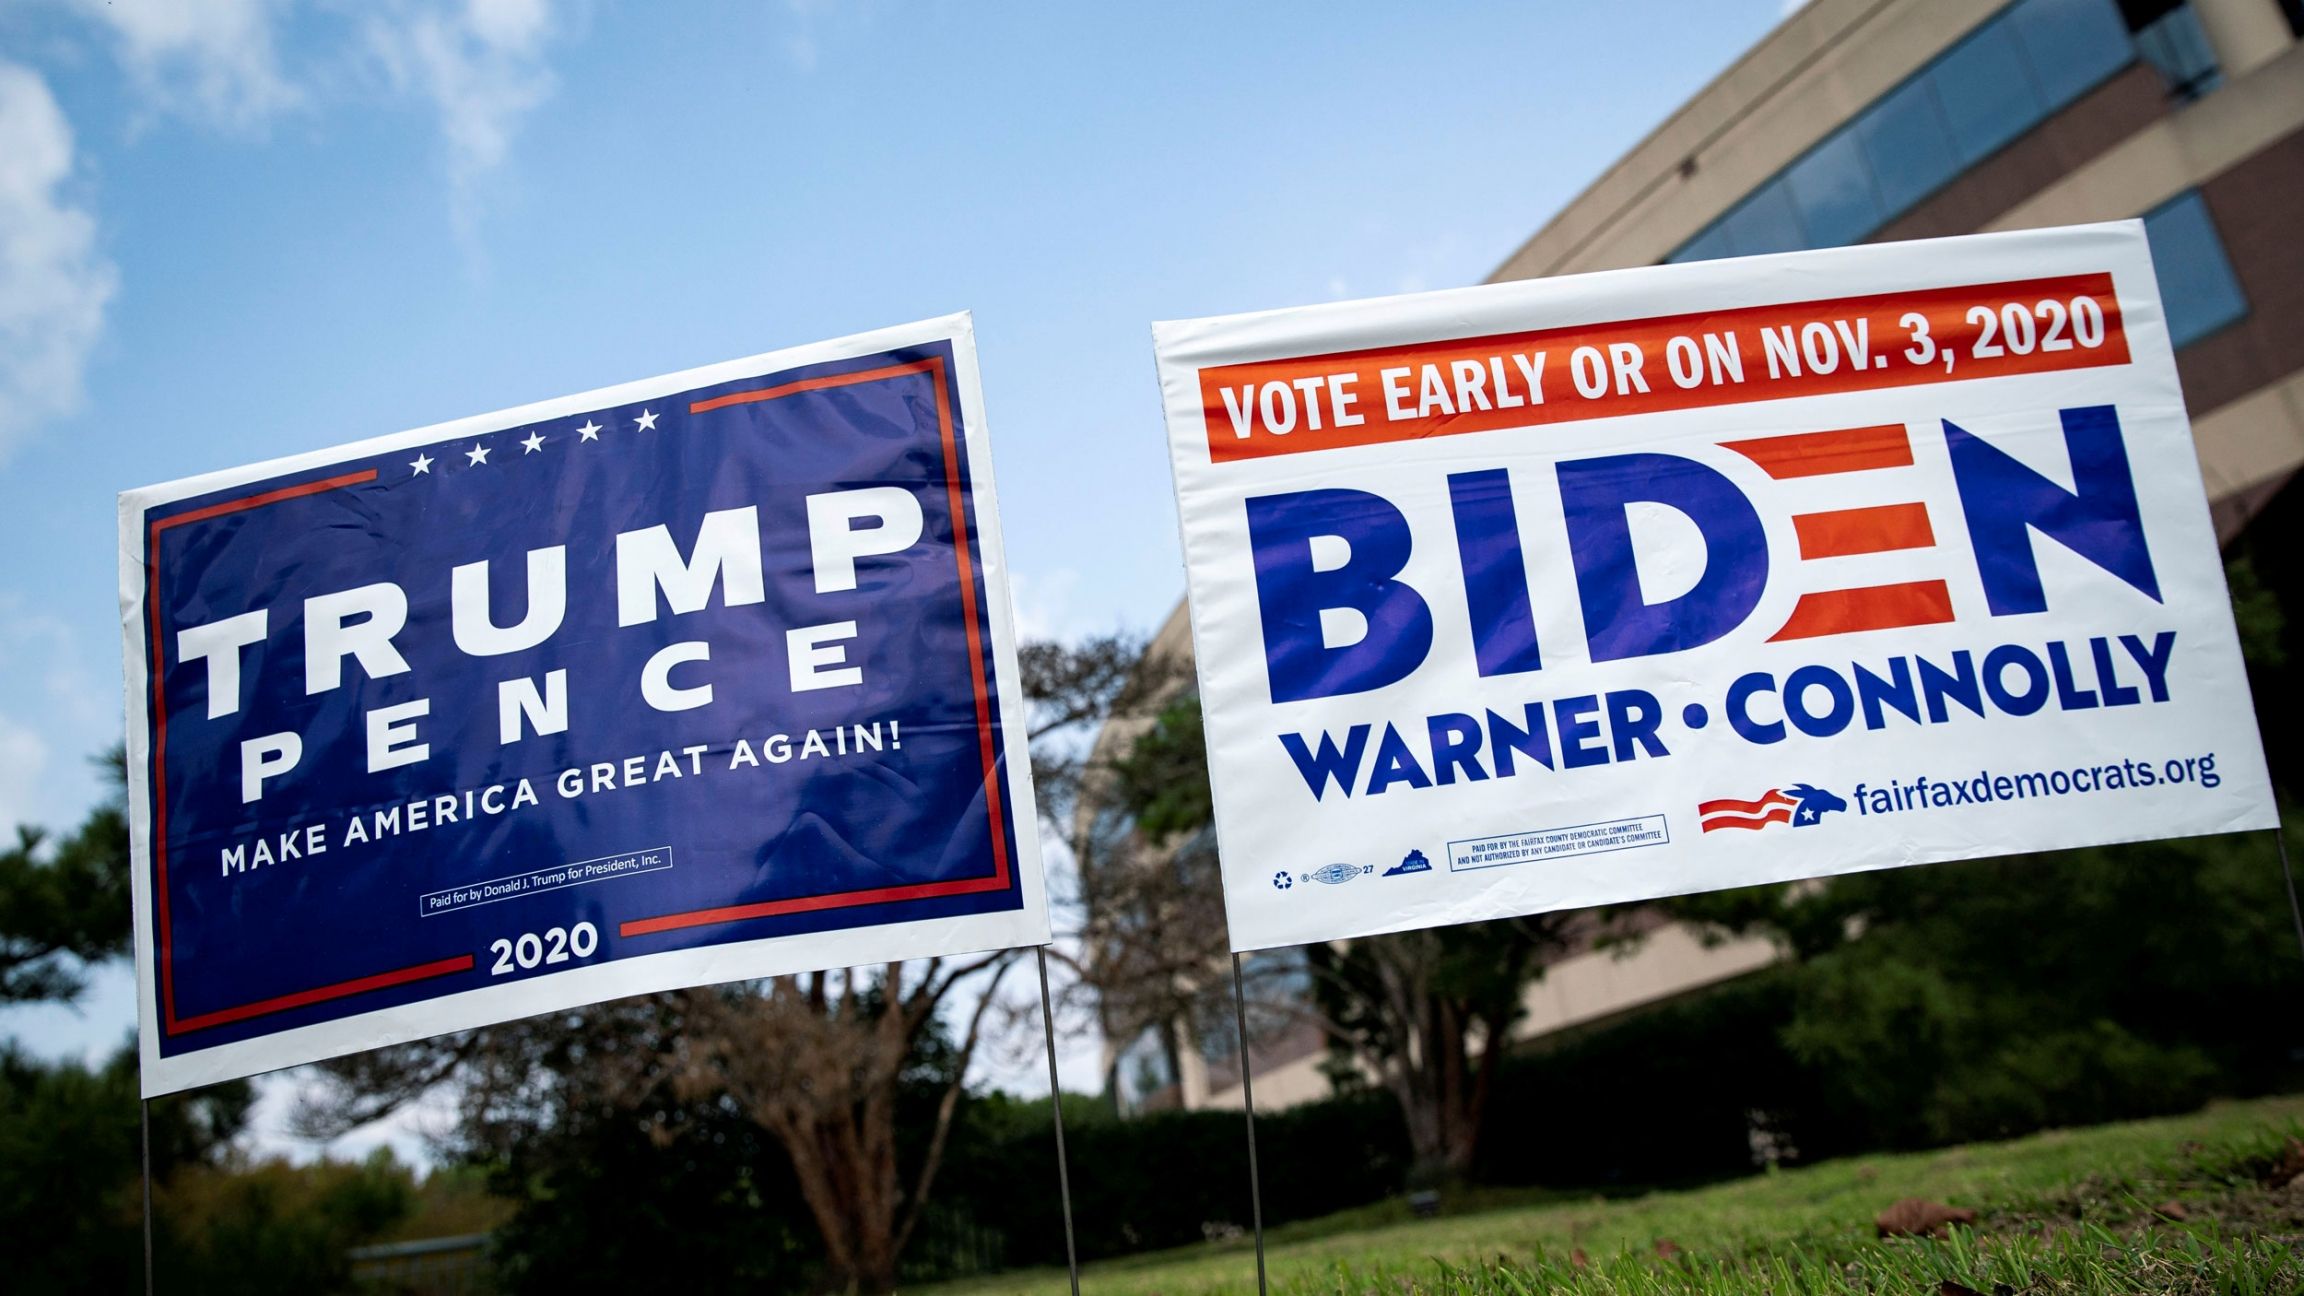 Two political yards signs are shown side-by-side — a mostly blue-colored Trump sign and a white with blue lettering Biden sign.